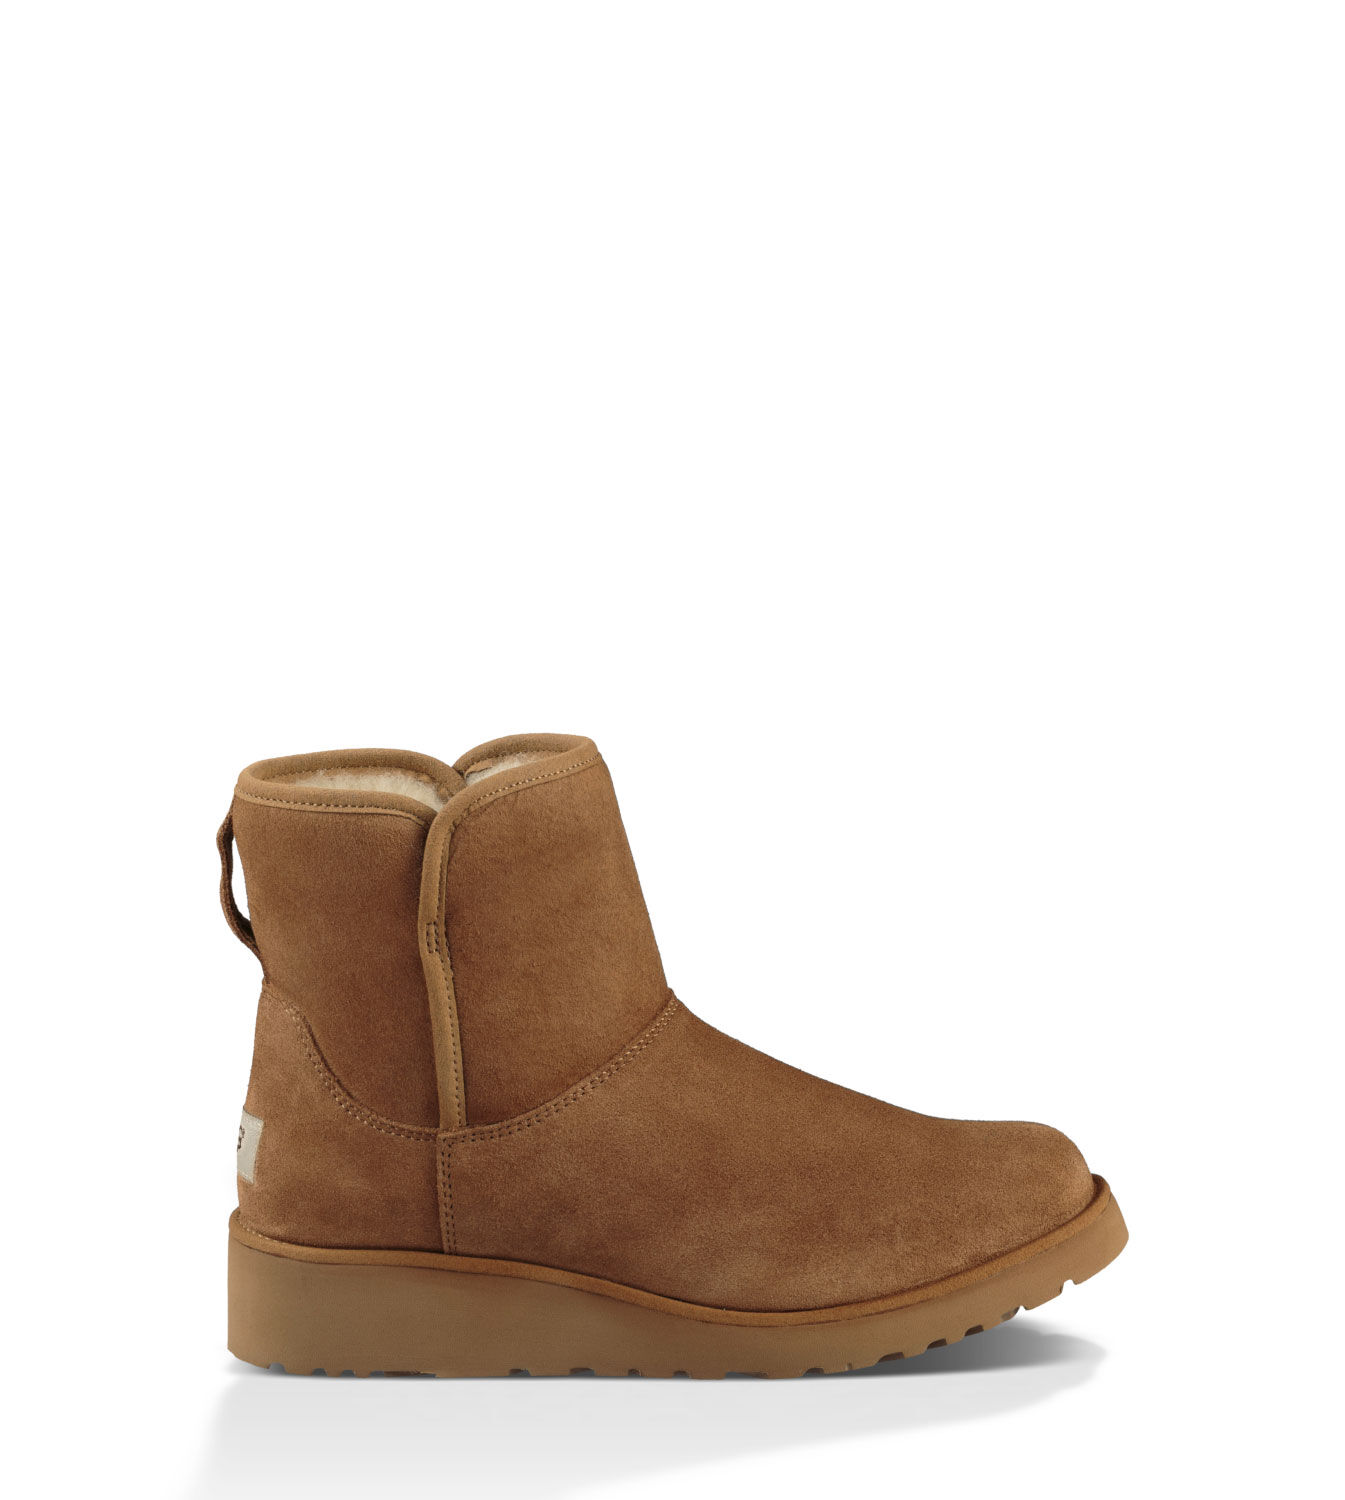 all styles of ugg boots